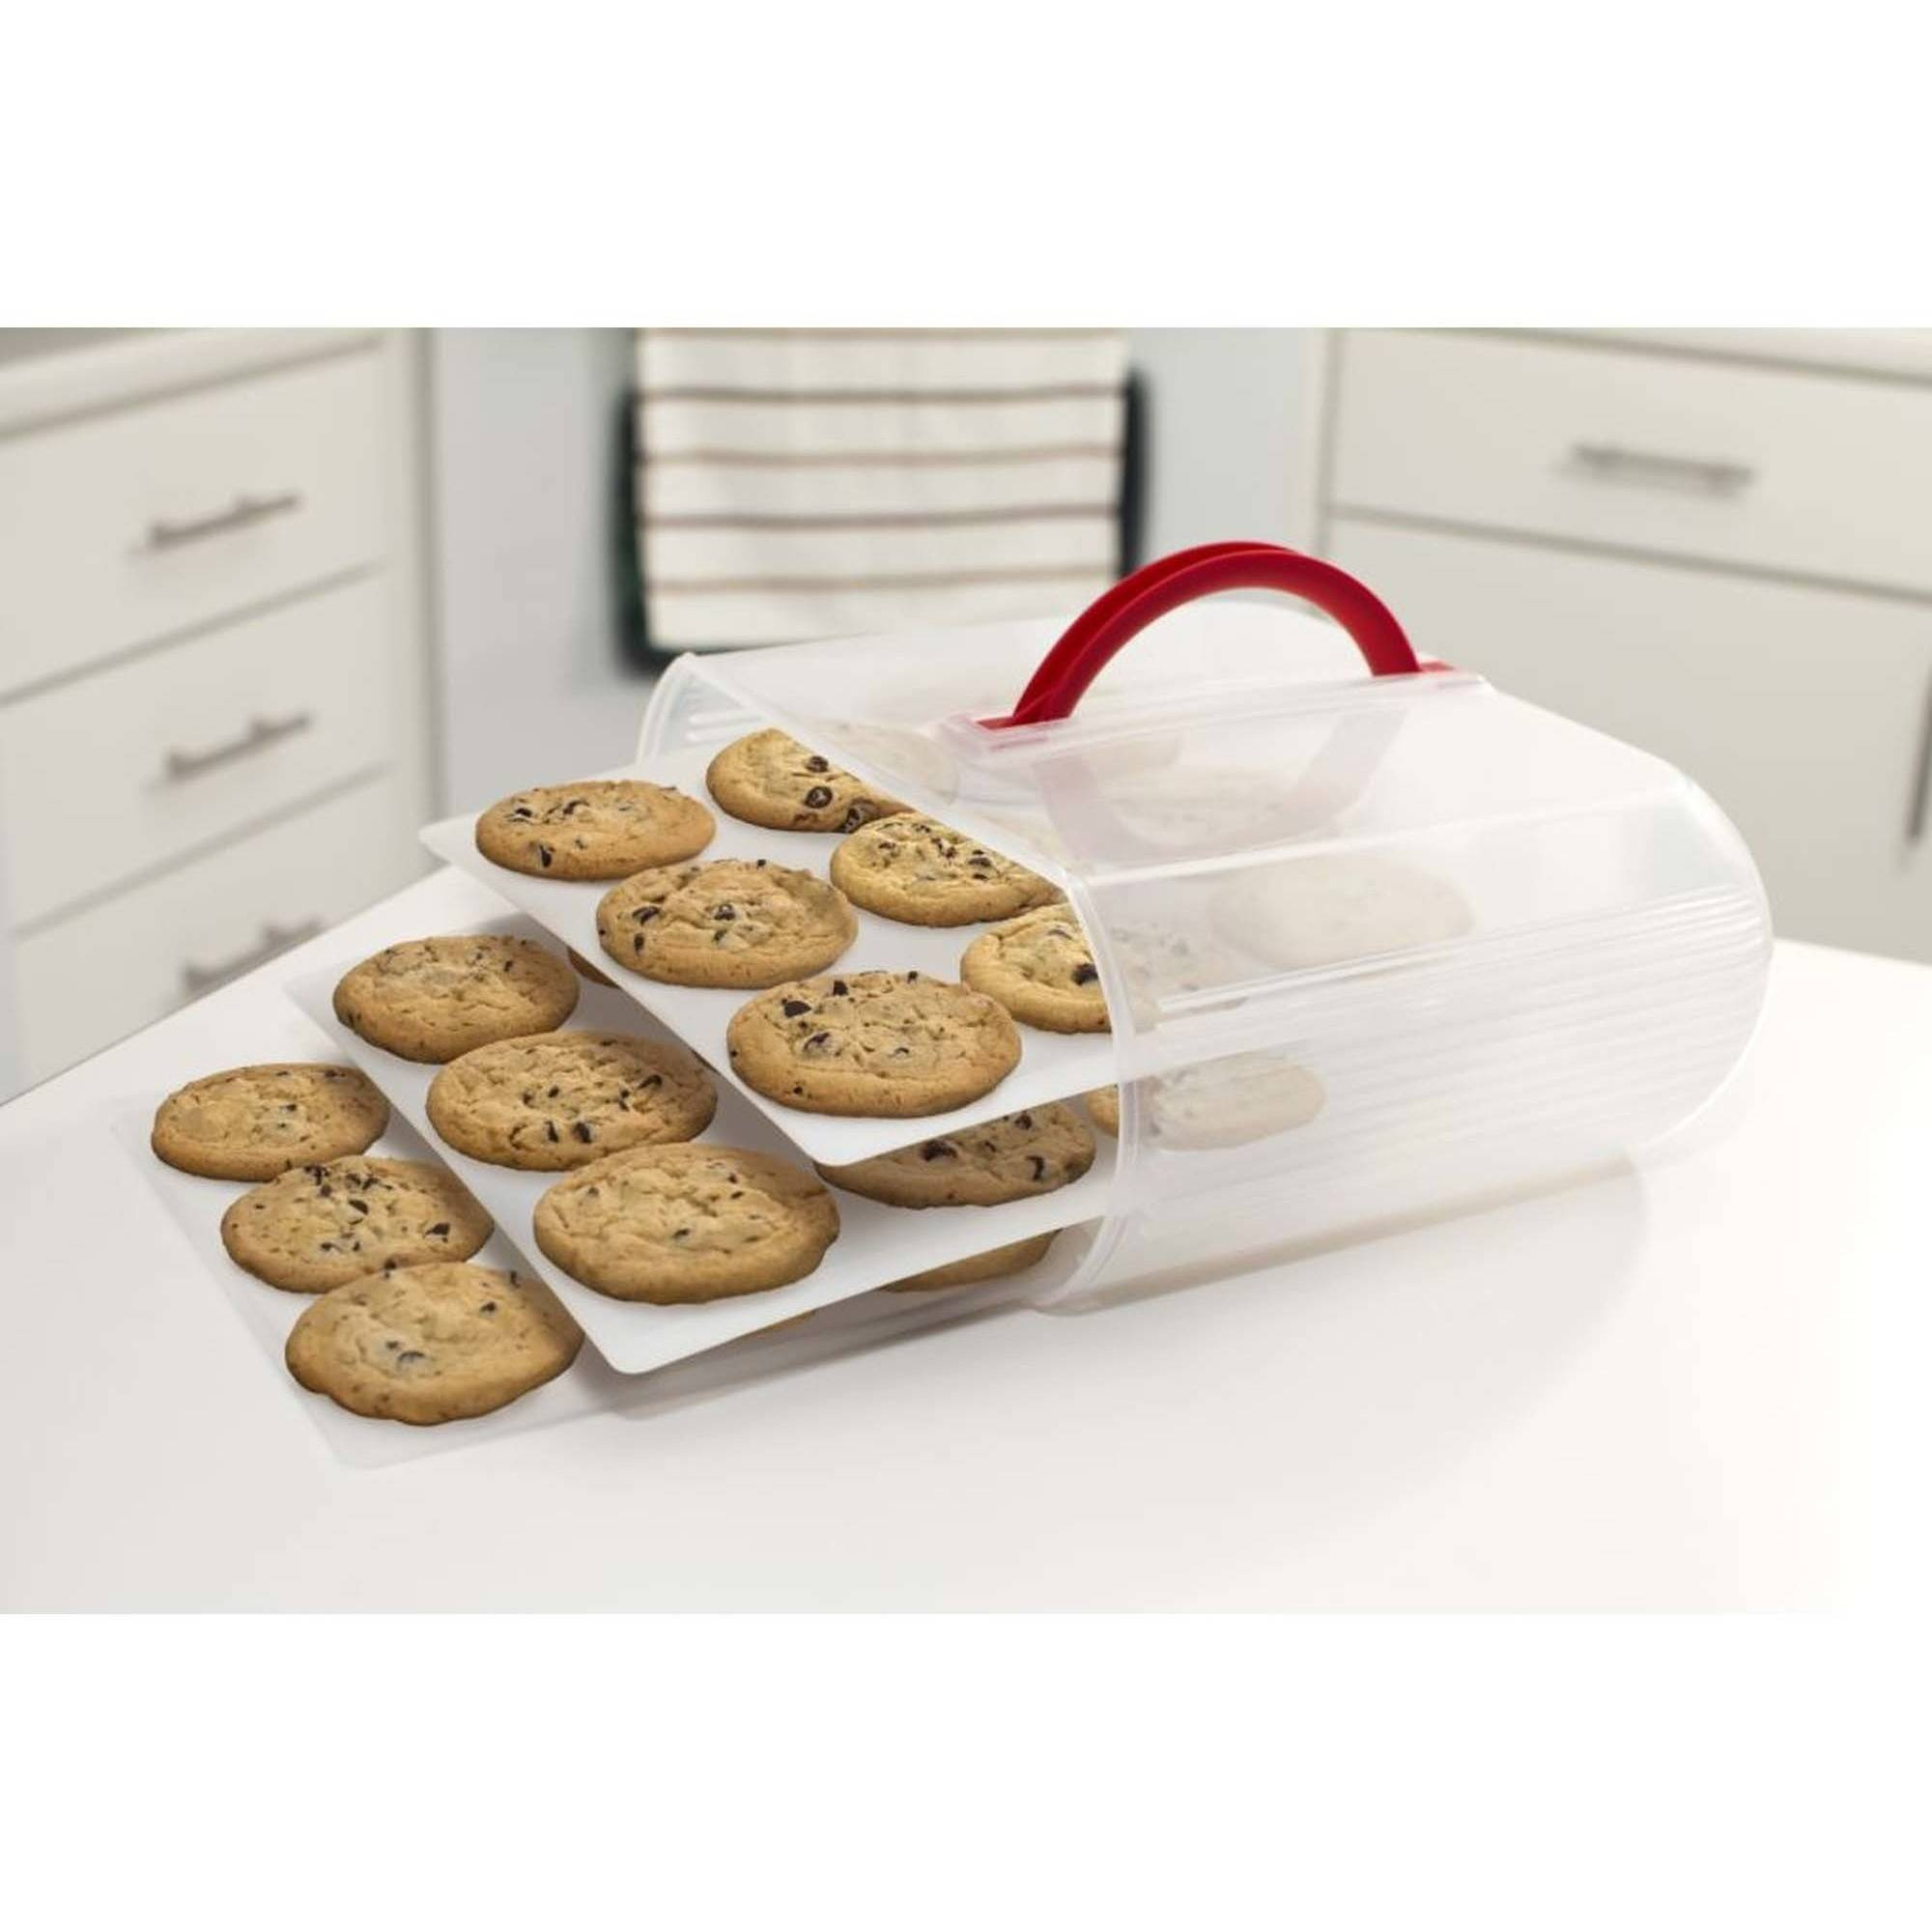 Love Cooking Company Mrs Fields Bakeru0027s Sto N Go, 10.5 Awesome Design